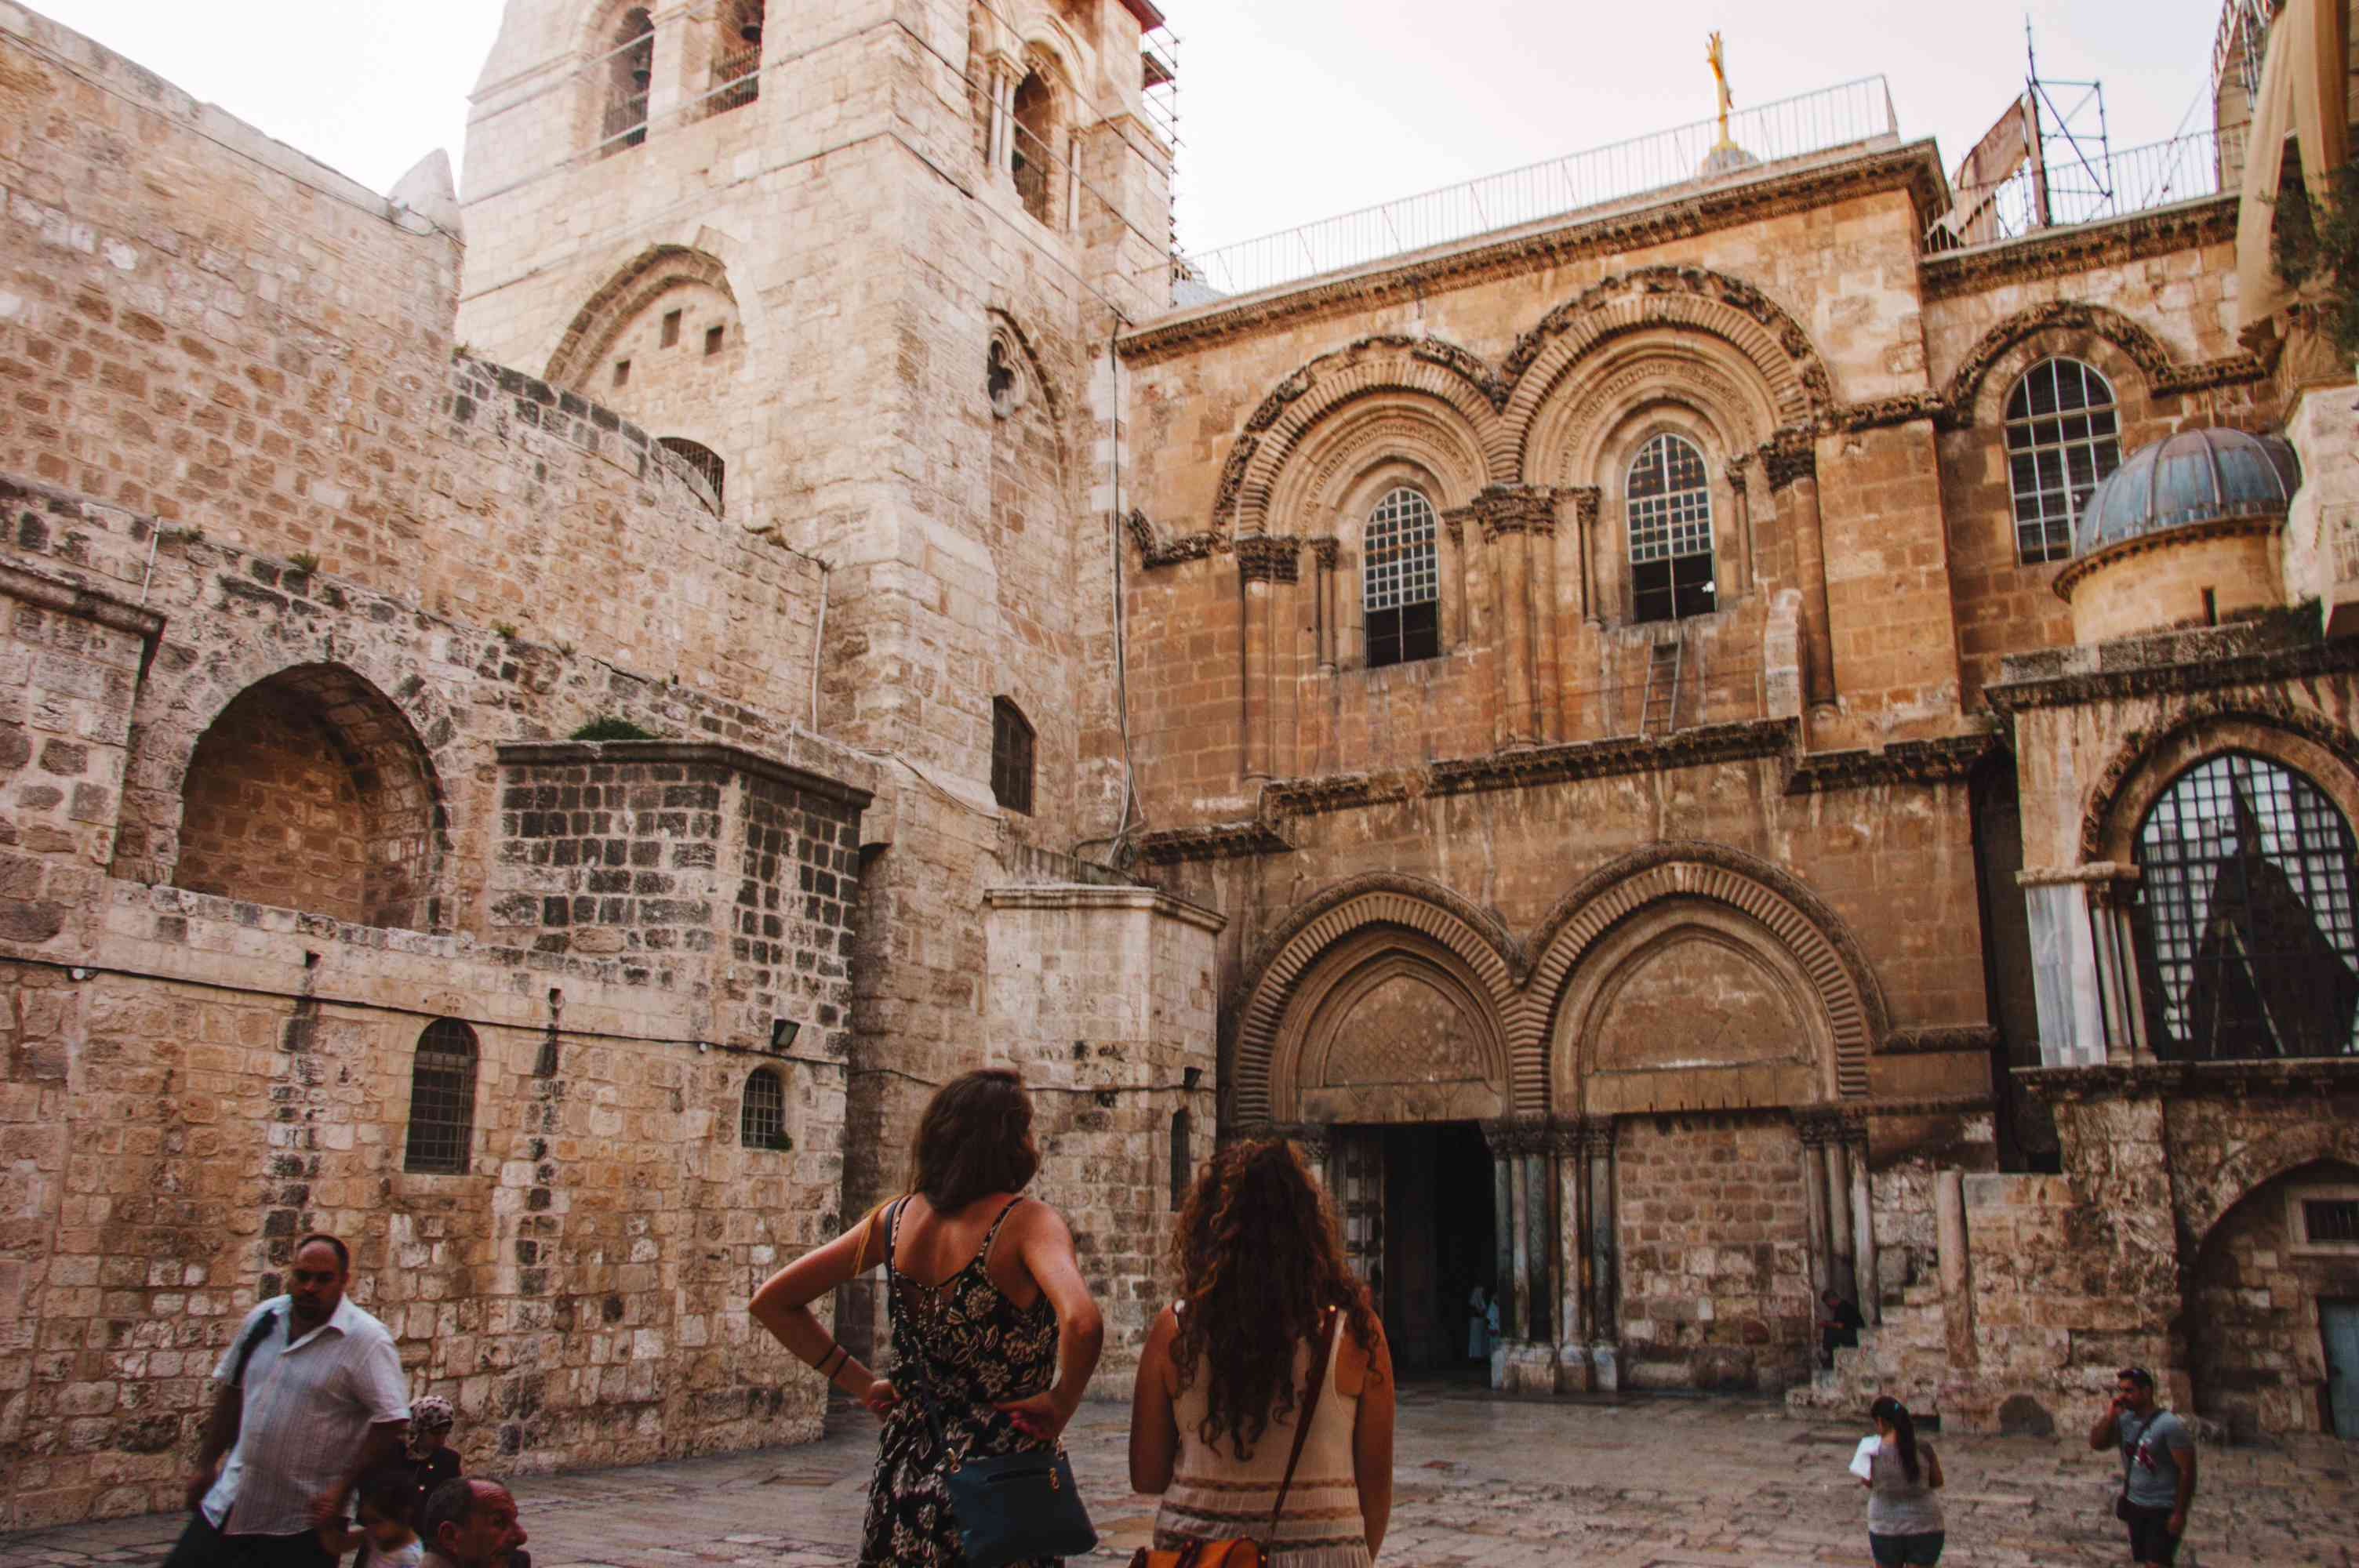 Tourists wandering through the Old City of Jerusalem